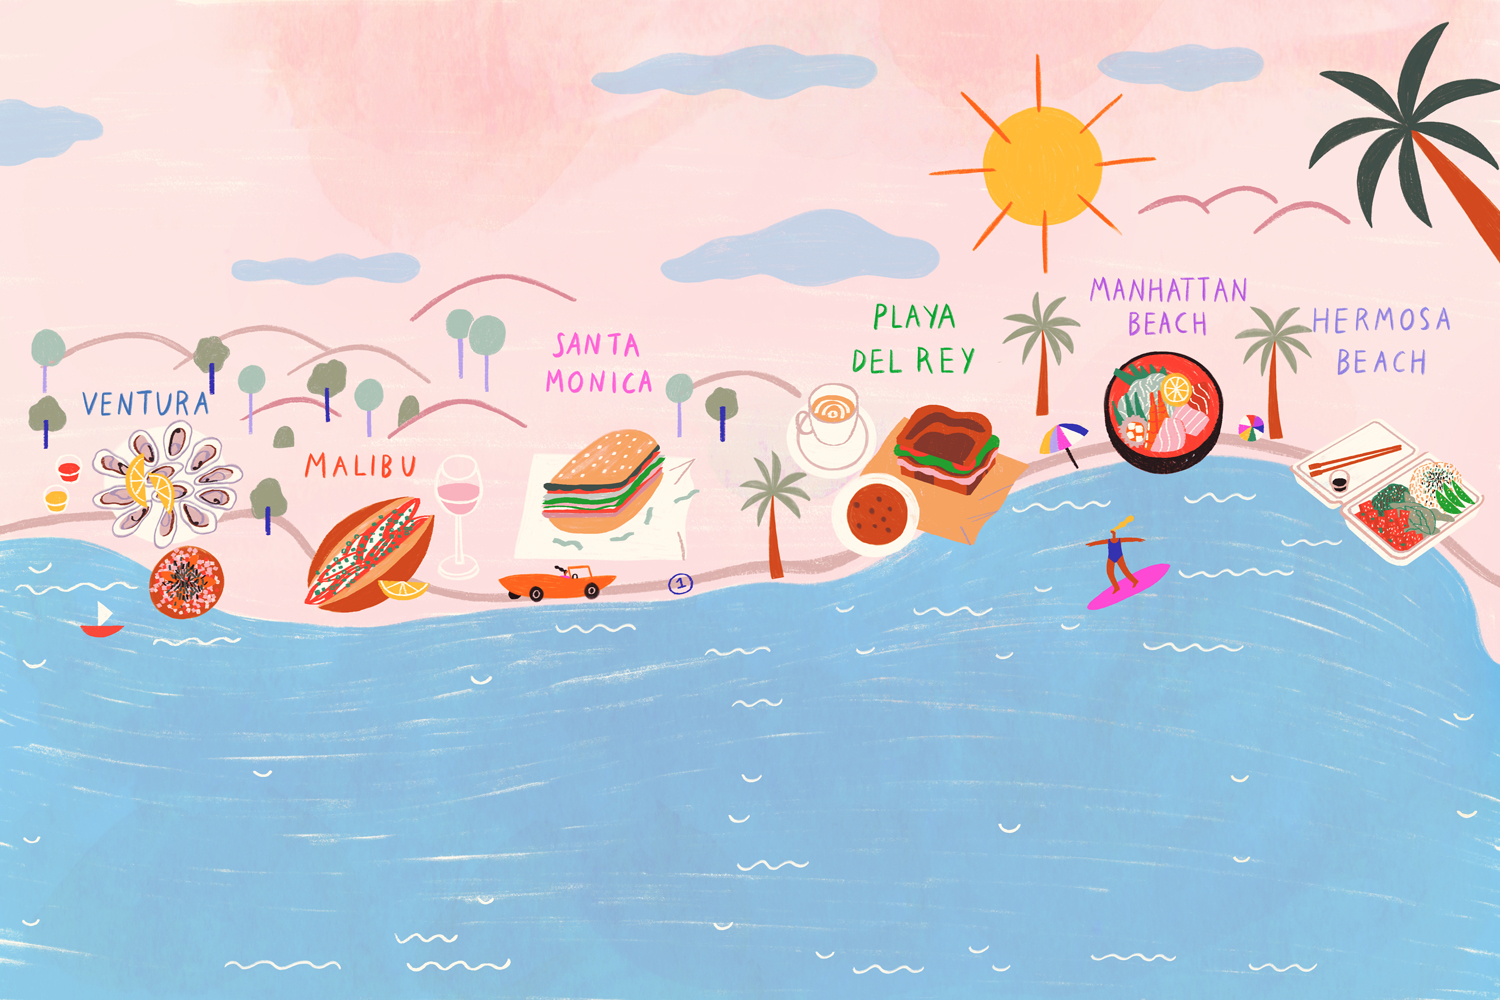 From Ventura to Hermosa, Where to Eat When You Head to the Beach